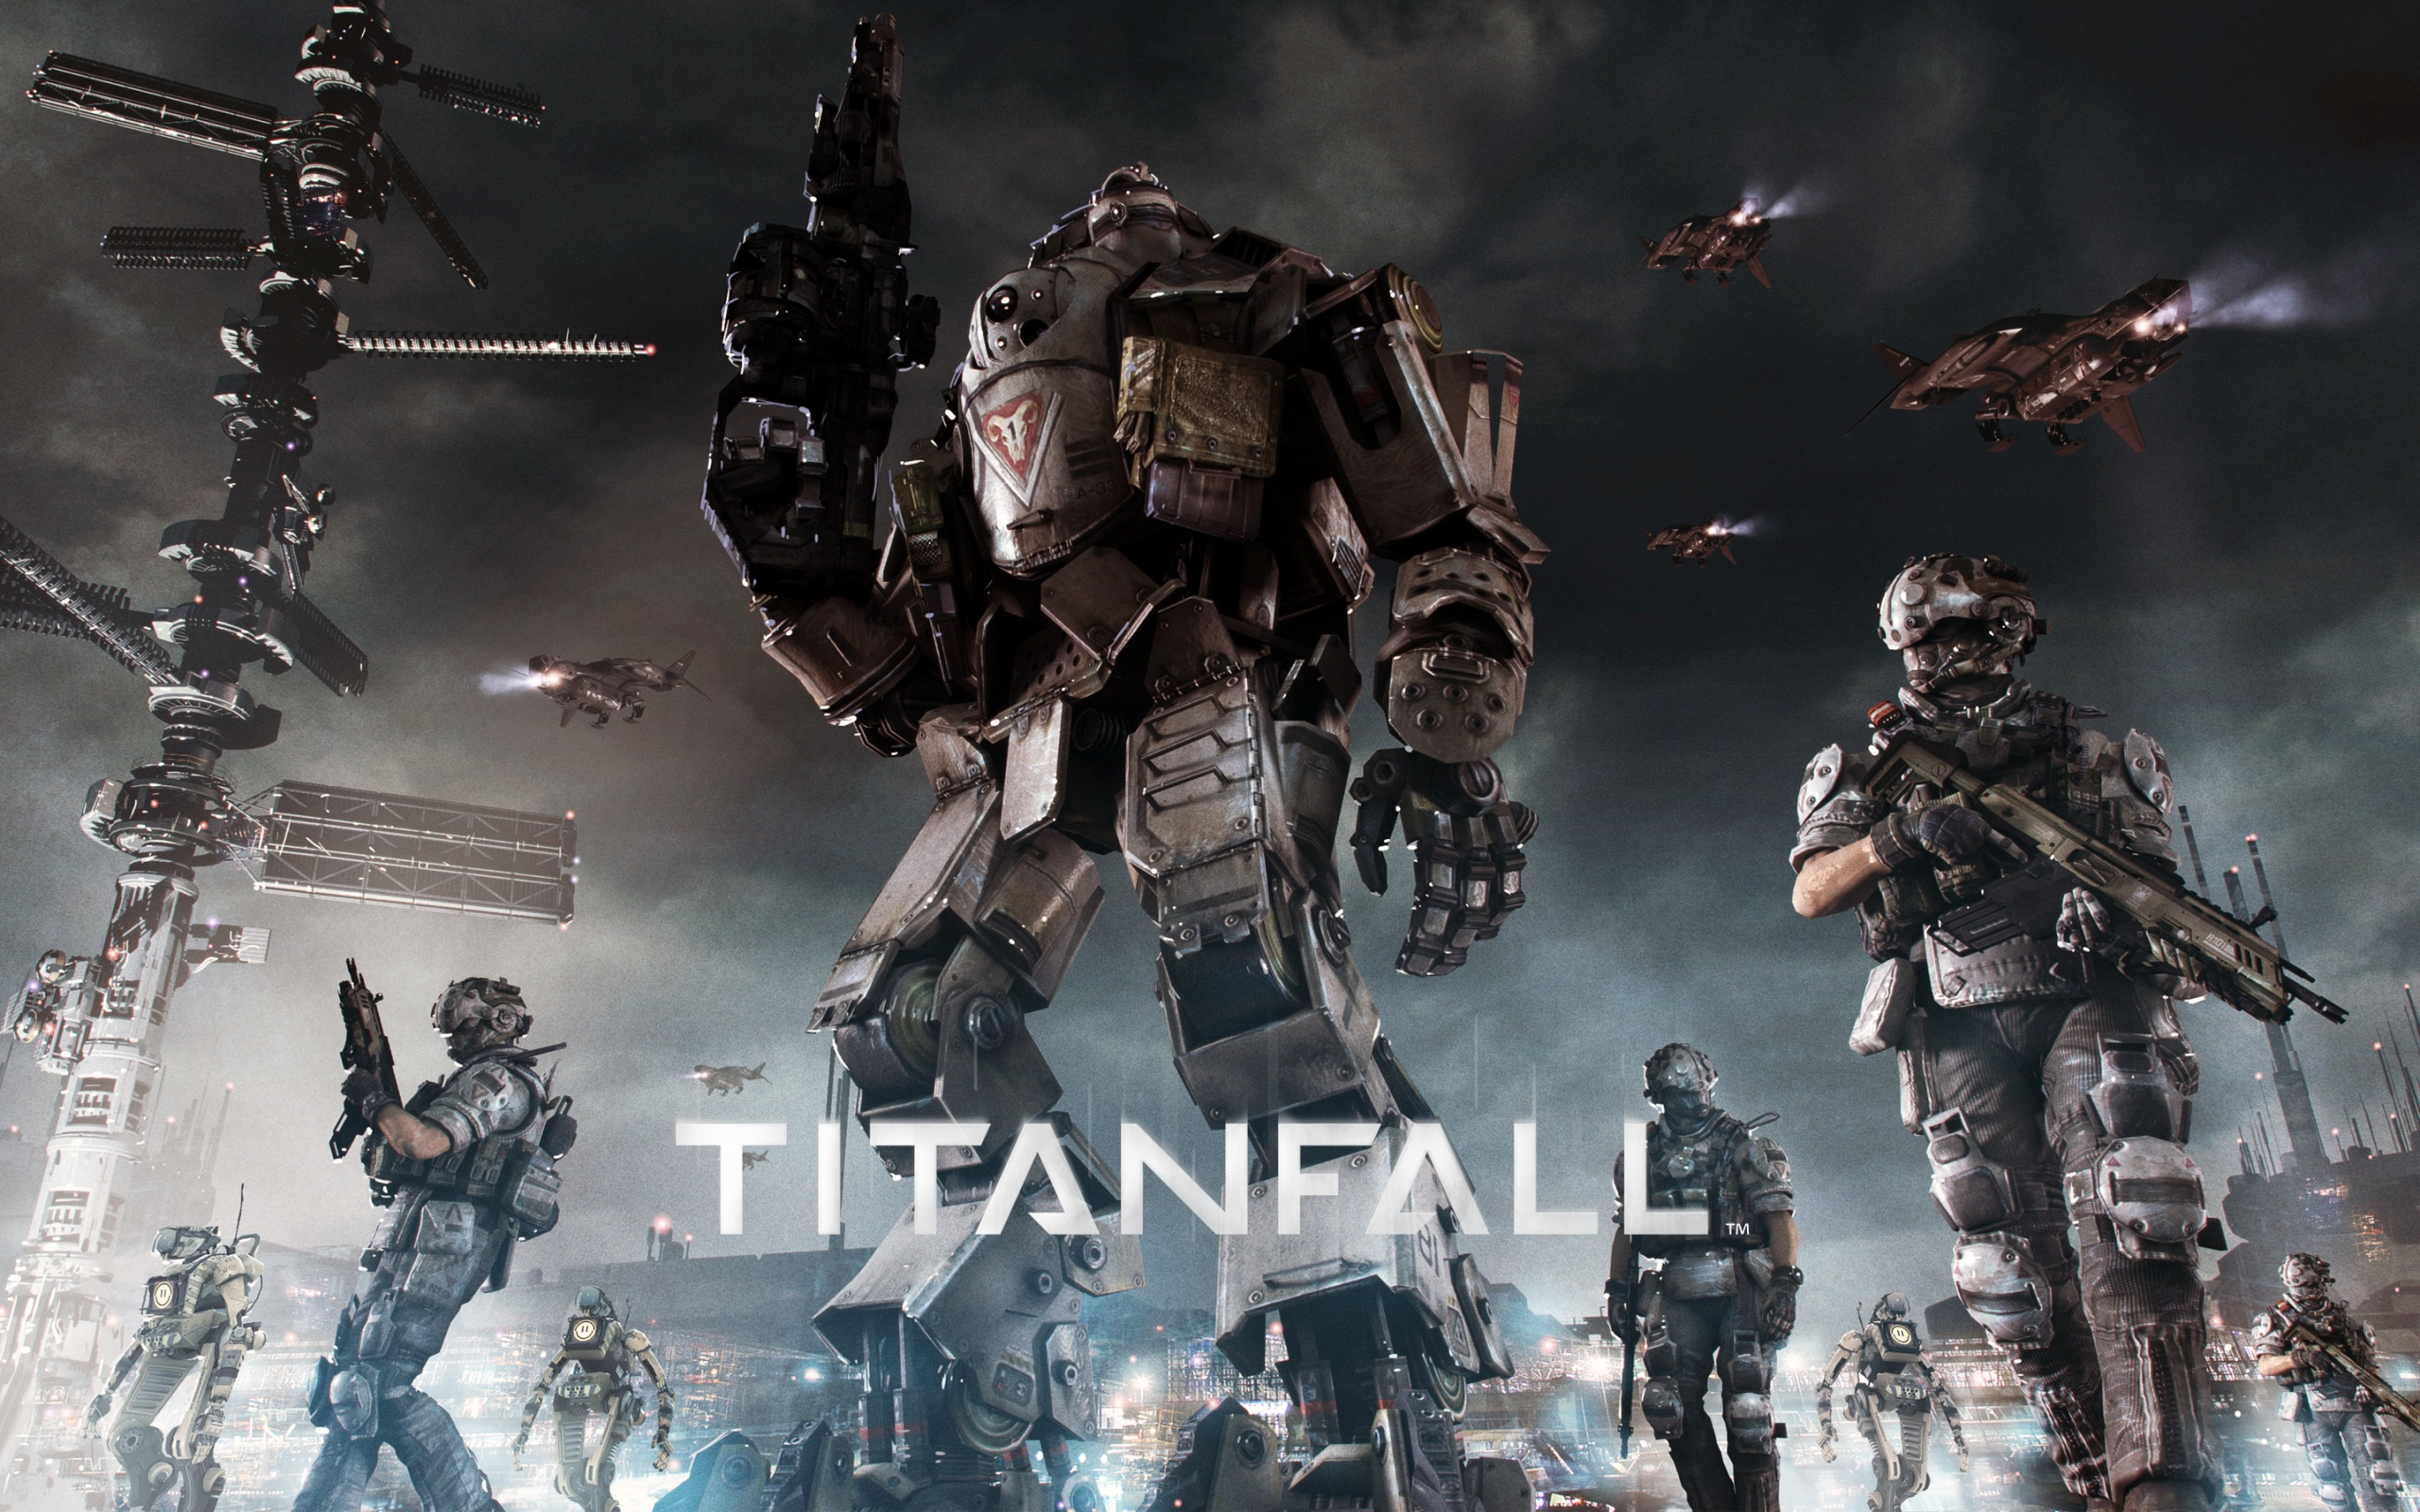 Titanfall 2 Wallpaper High Quality Resolution Is Cool Wallpapers